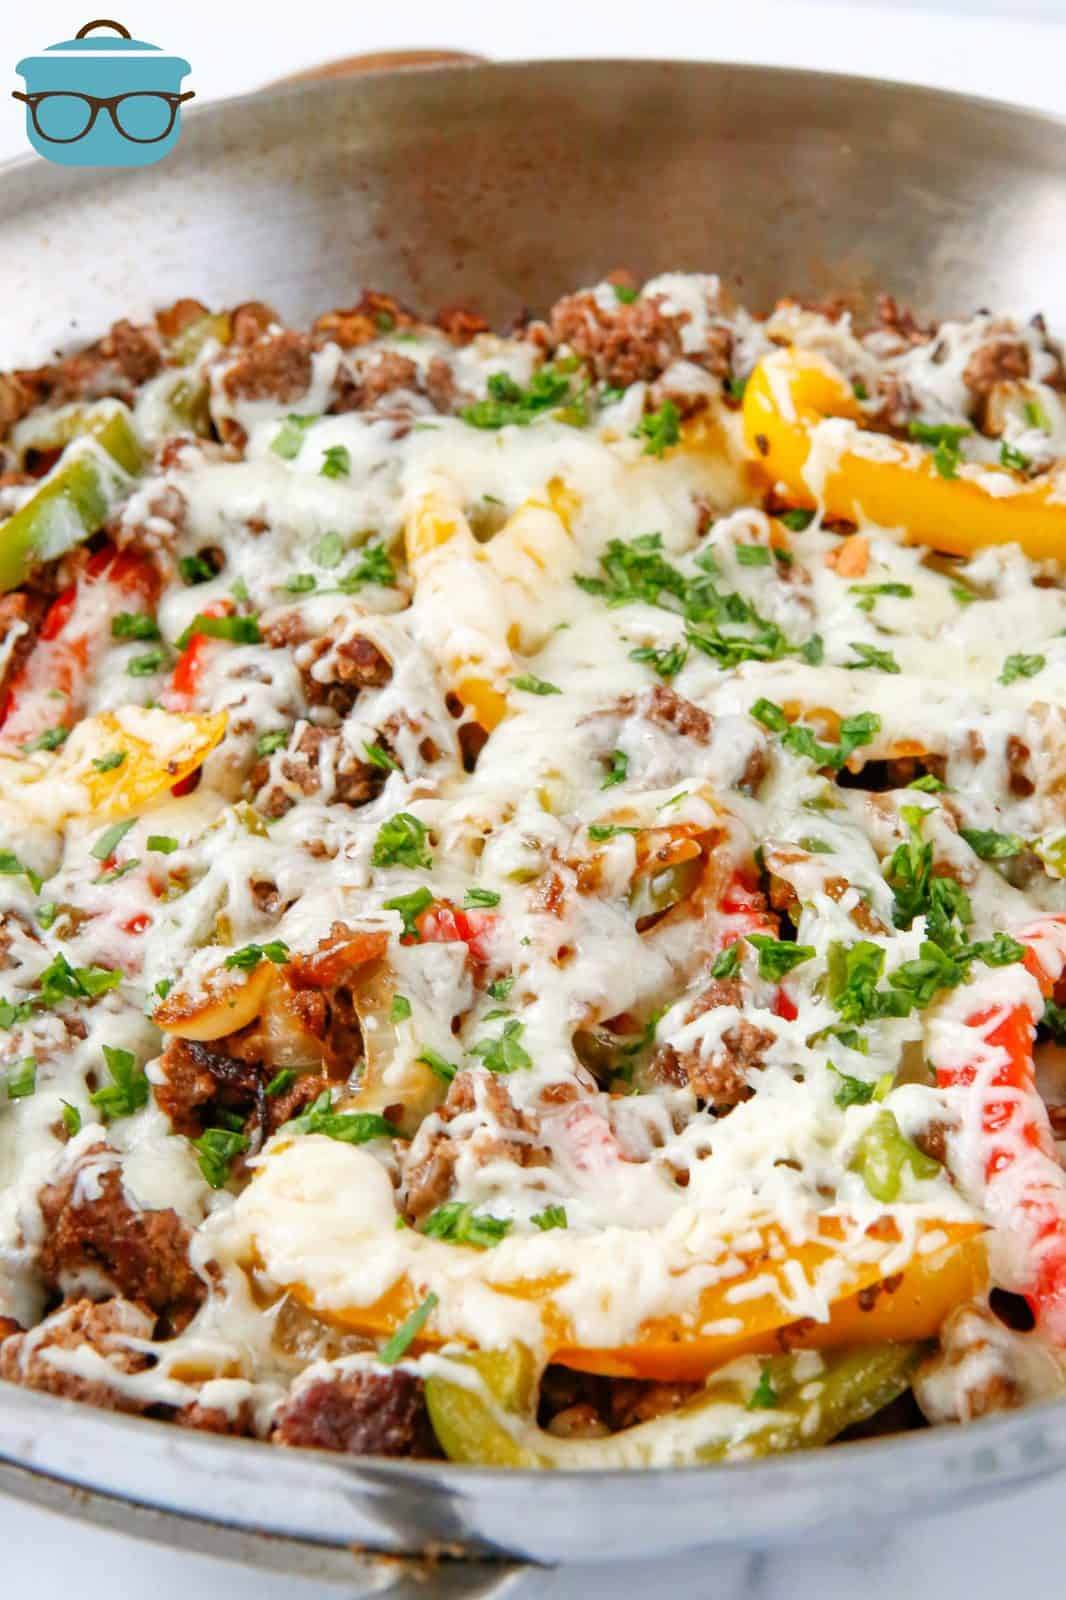 Philly Cheesesteak Skillet in skillet with melted cheese.